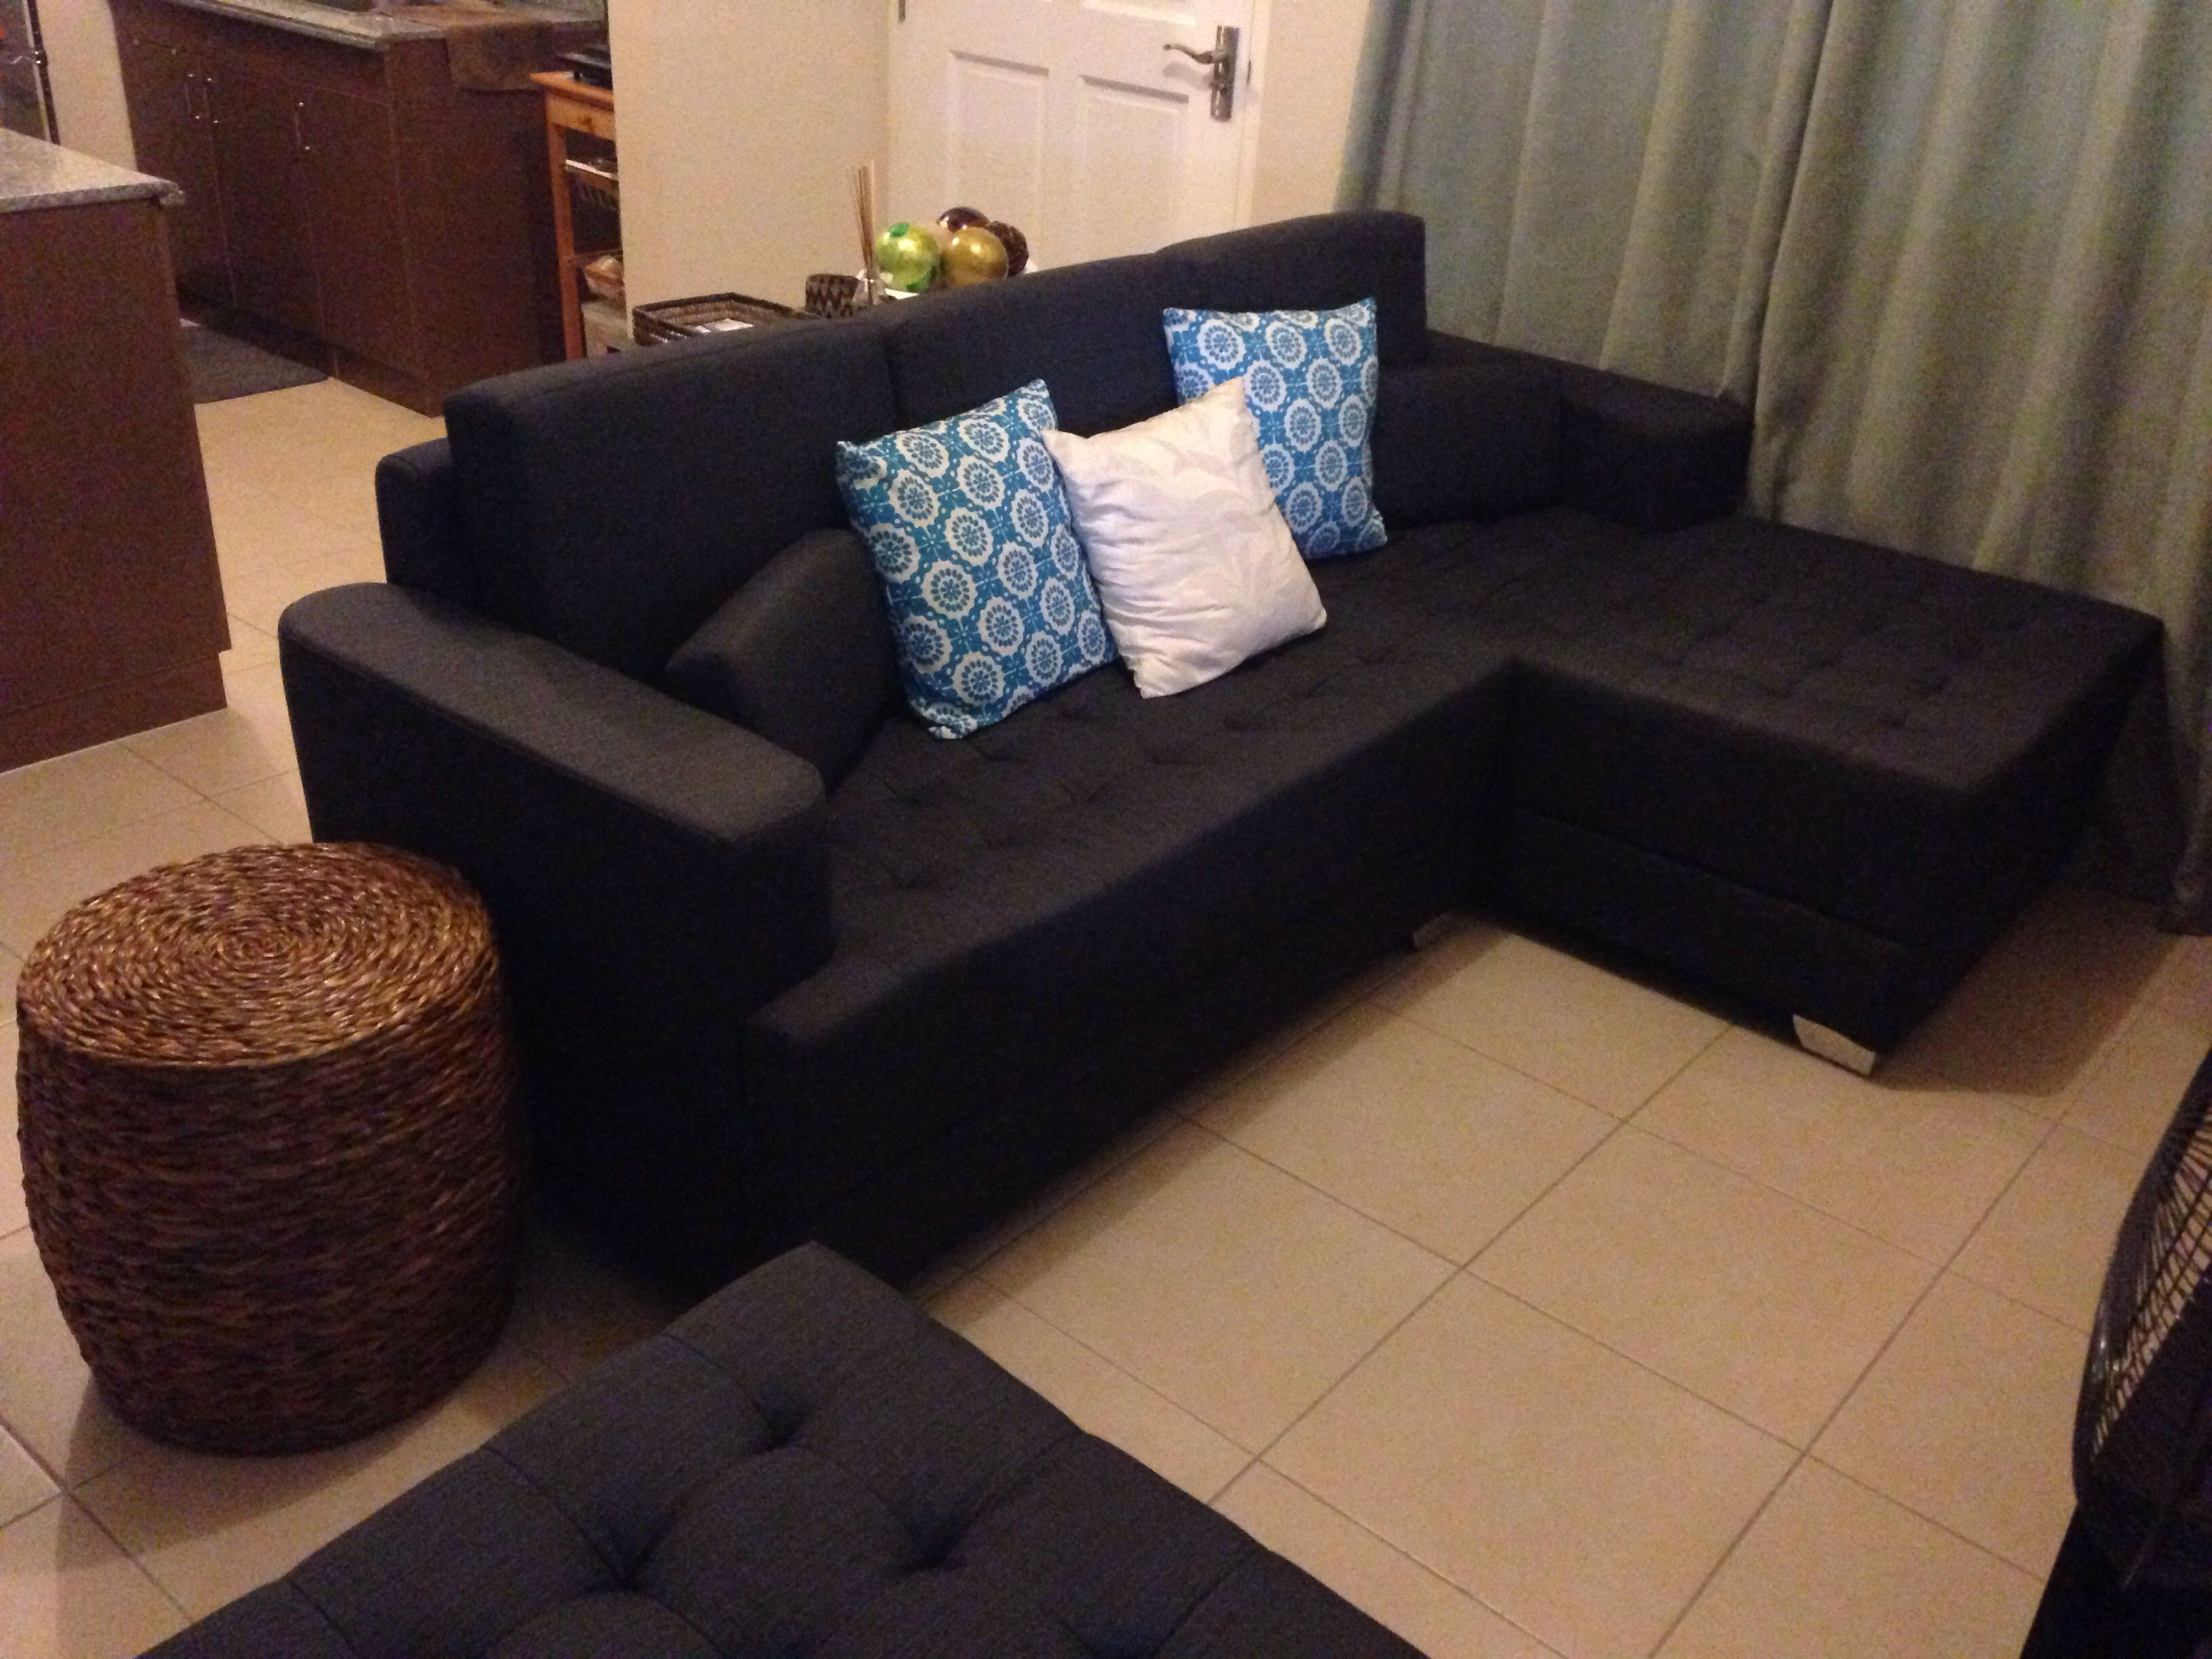 living room throw pillows and ottoman from Mandaue Foam sofa